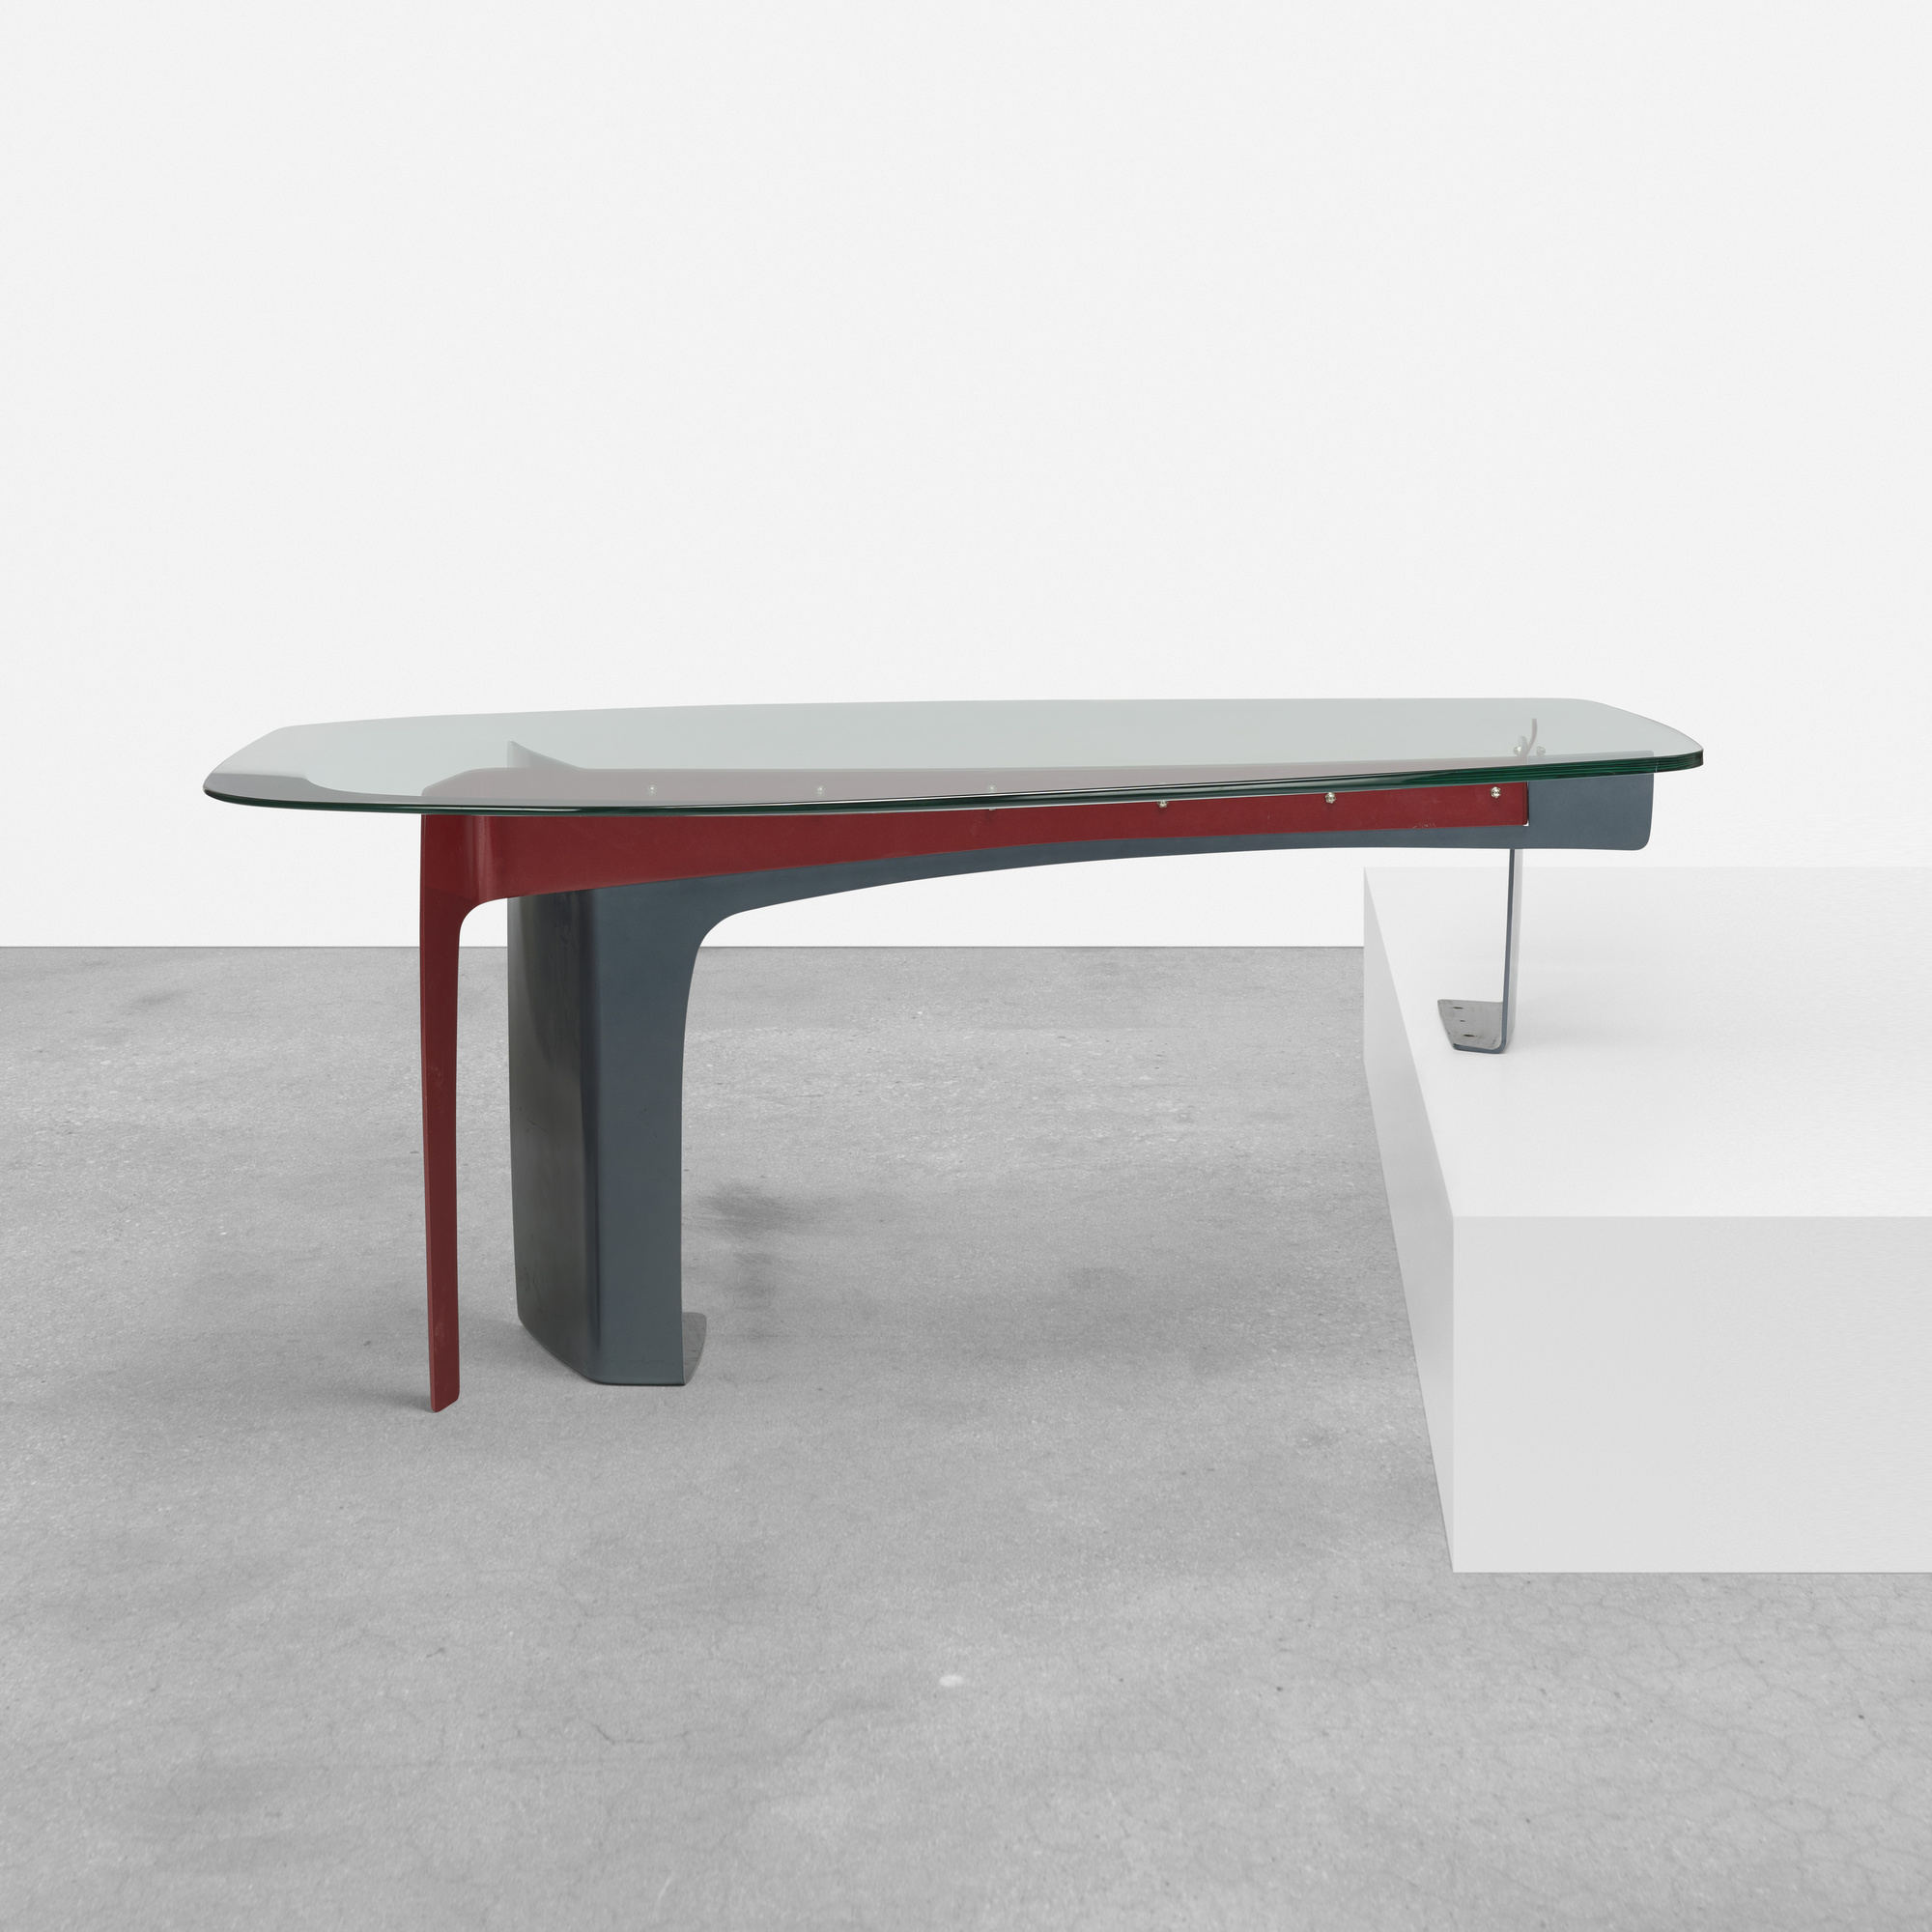 272: Ron Krueck and Mark Sexton / custom desk from Untitled No. 2, Chicago (1 of 4)